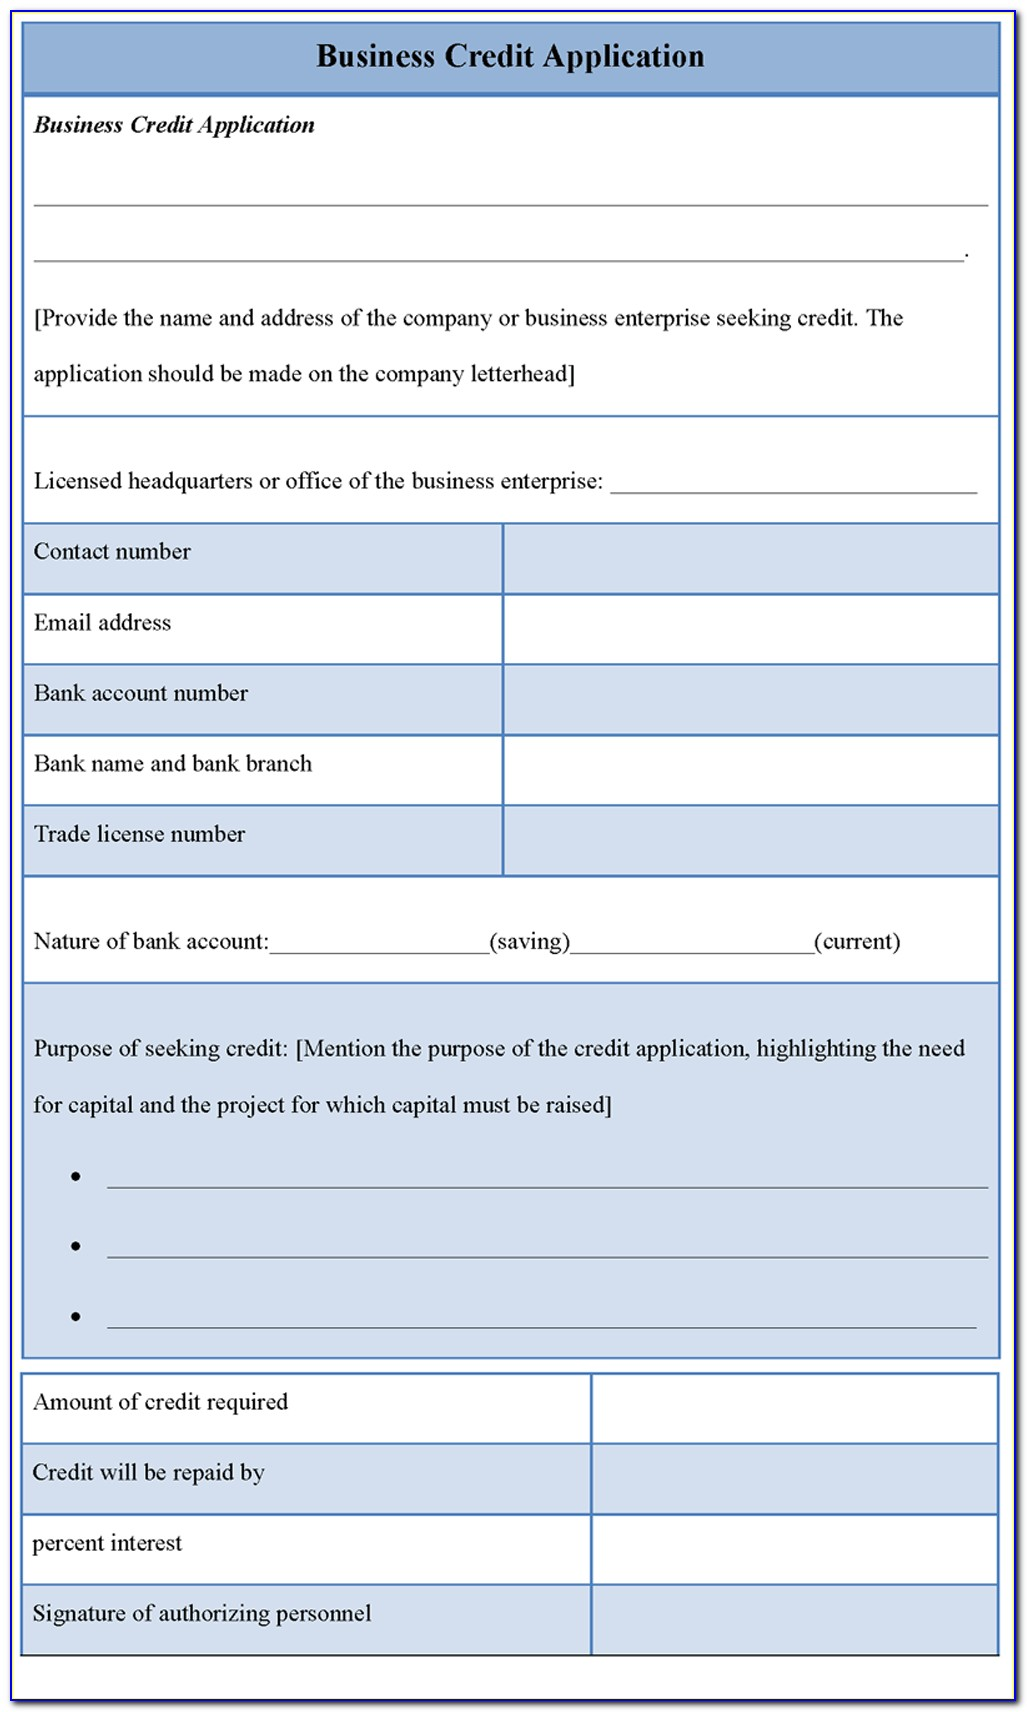 Free Business Credit Application Form Template South Africa